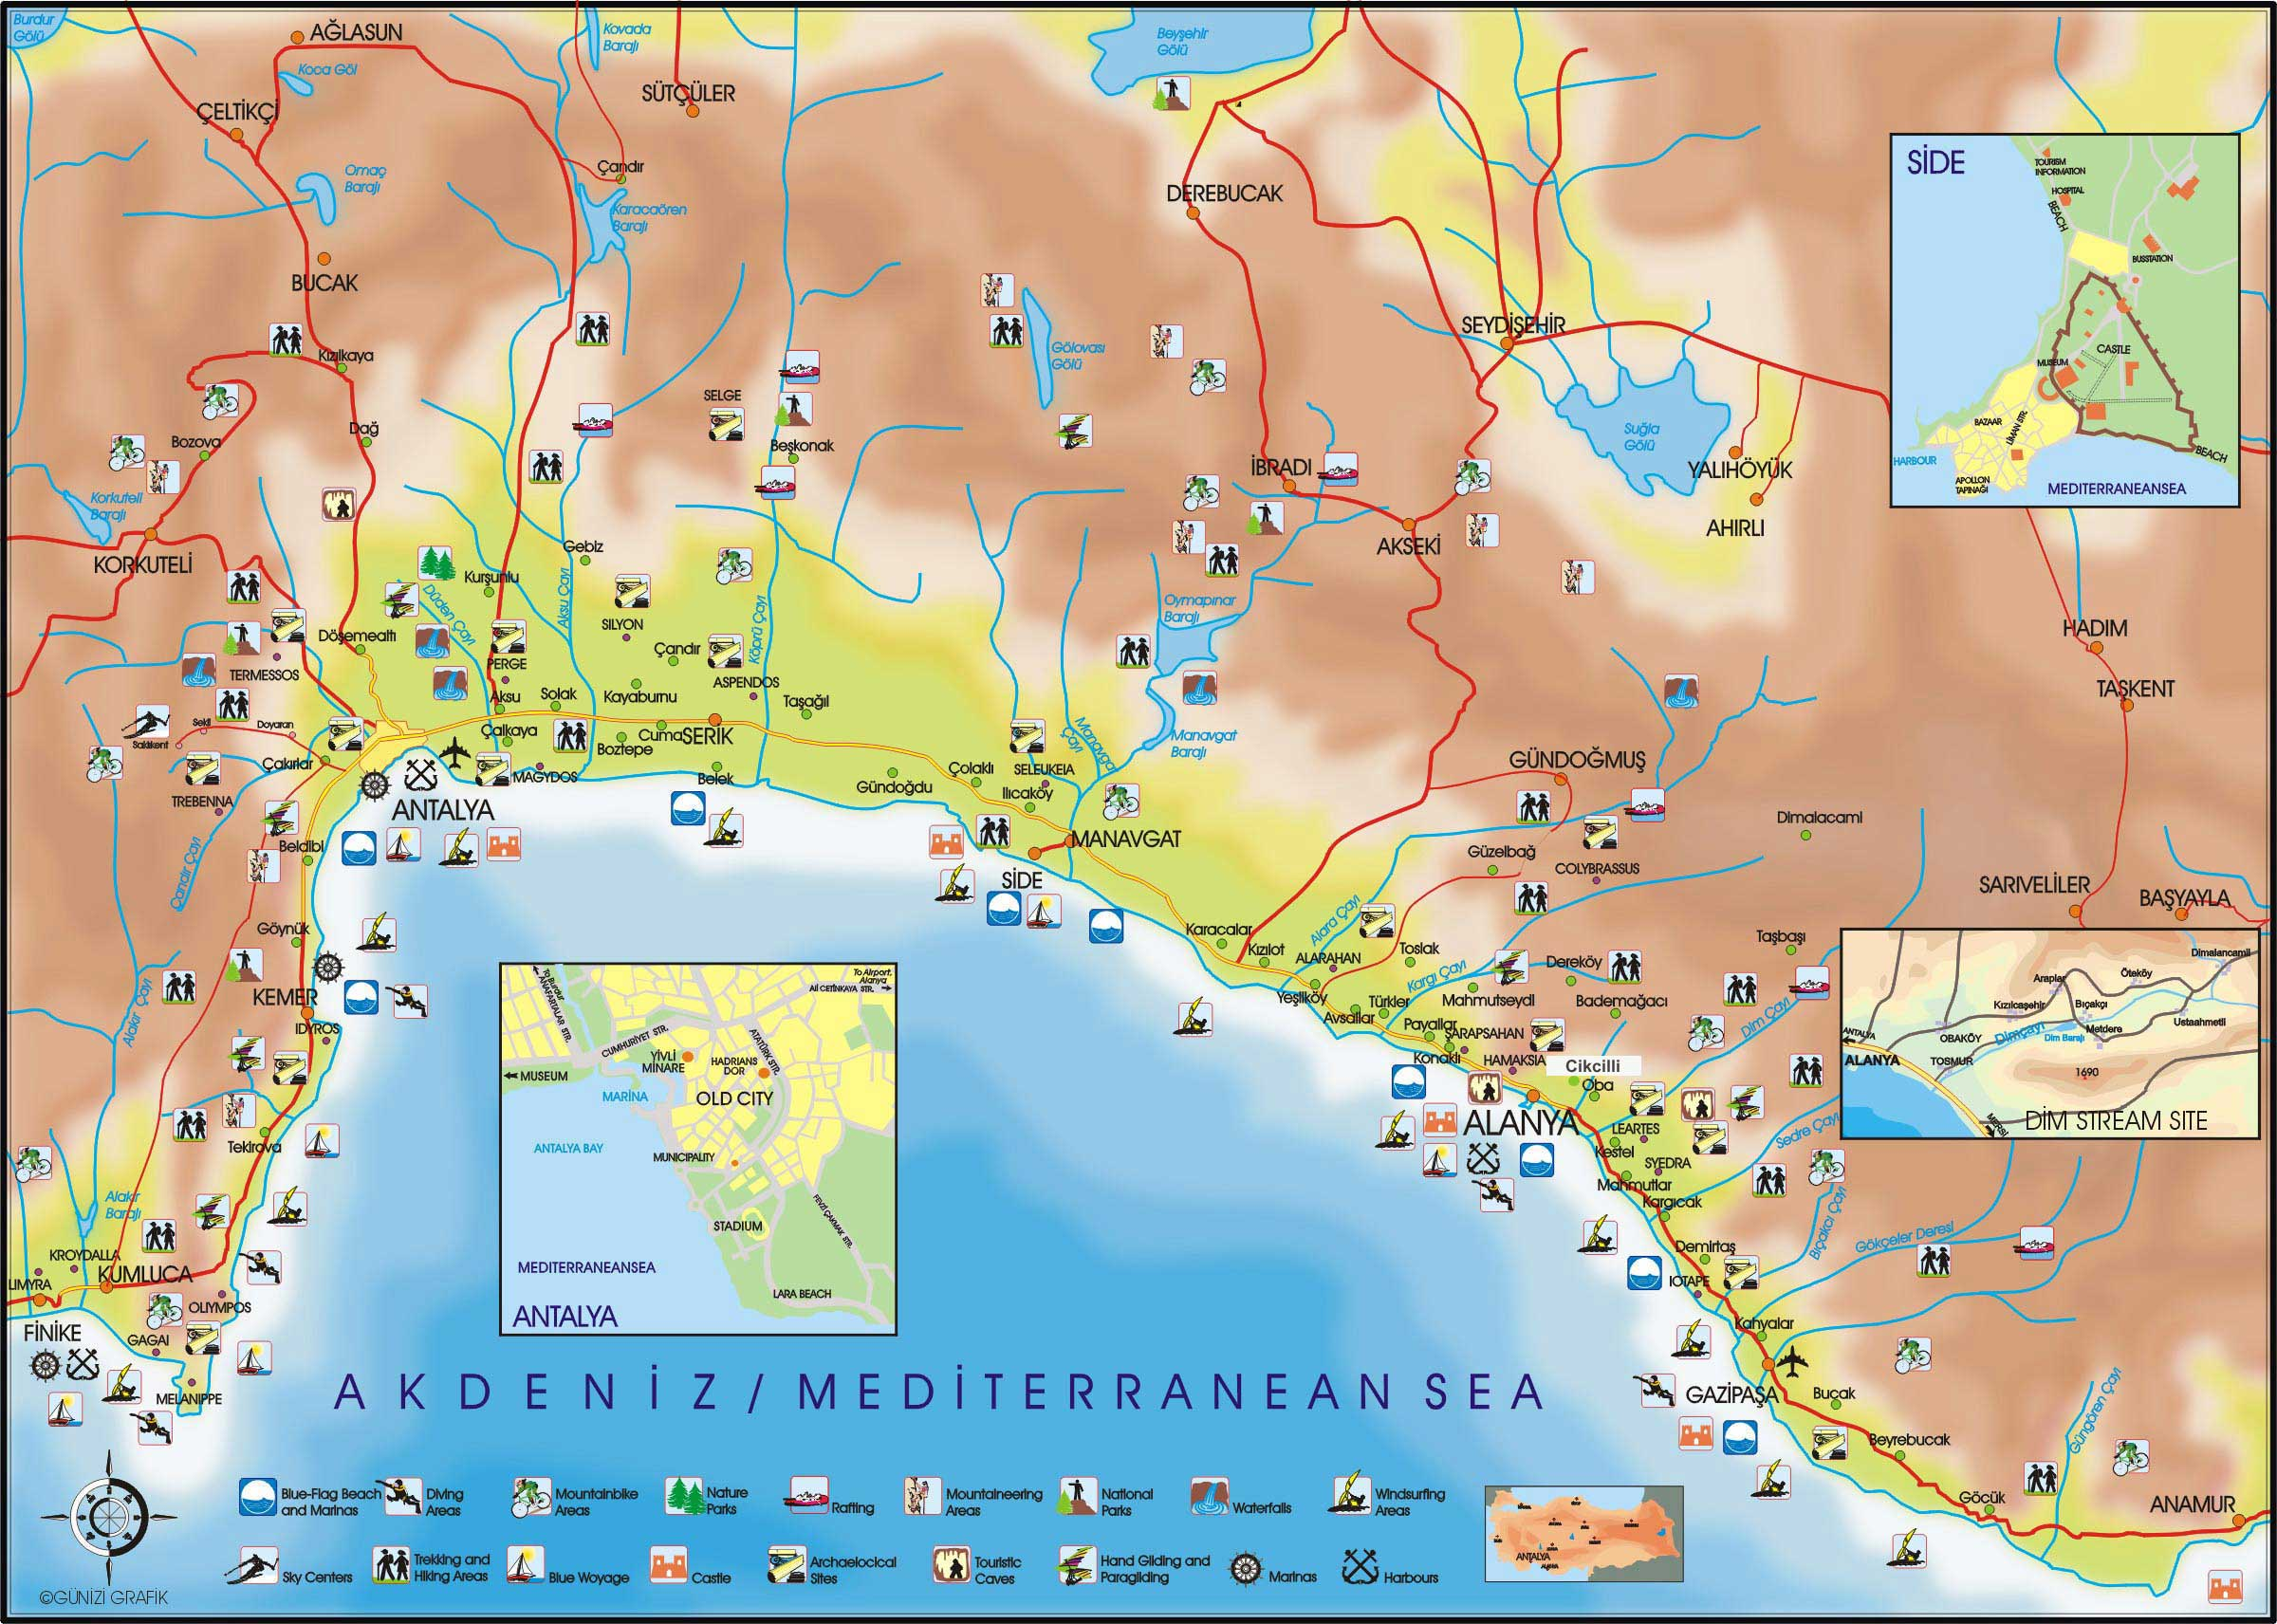 antalya karte Large Antalya Maps for Free Download and Print | High Resolution  antalya karte